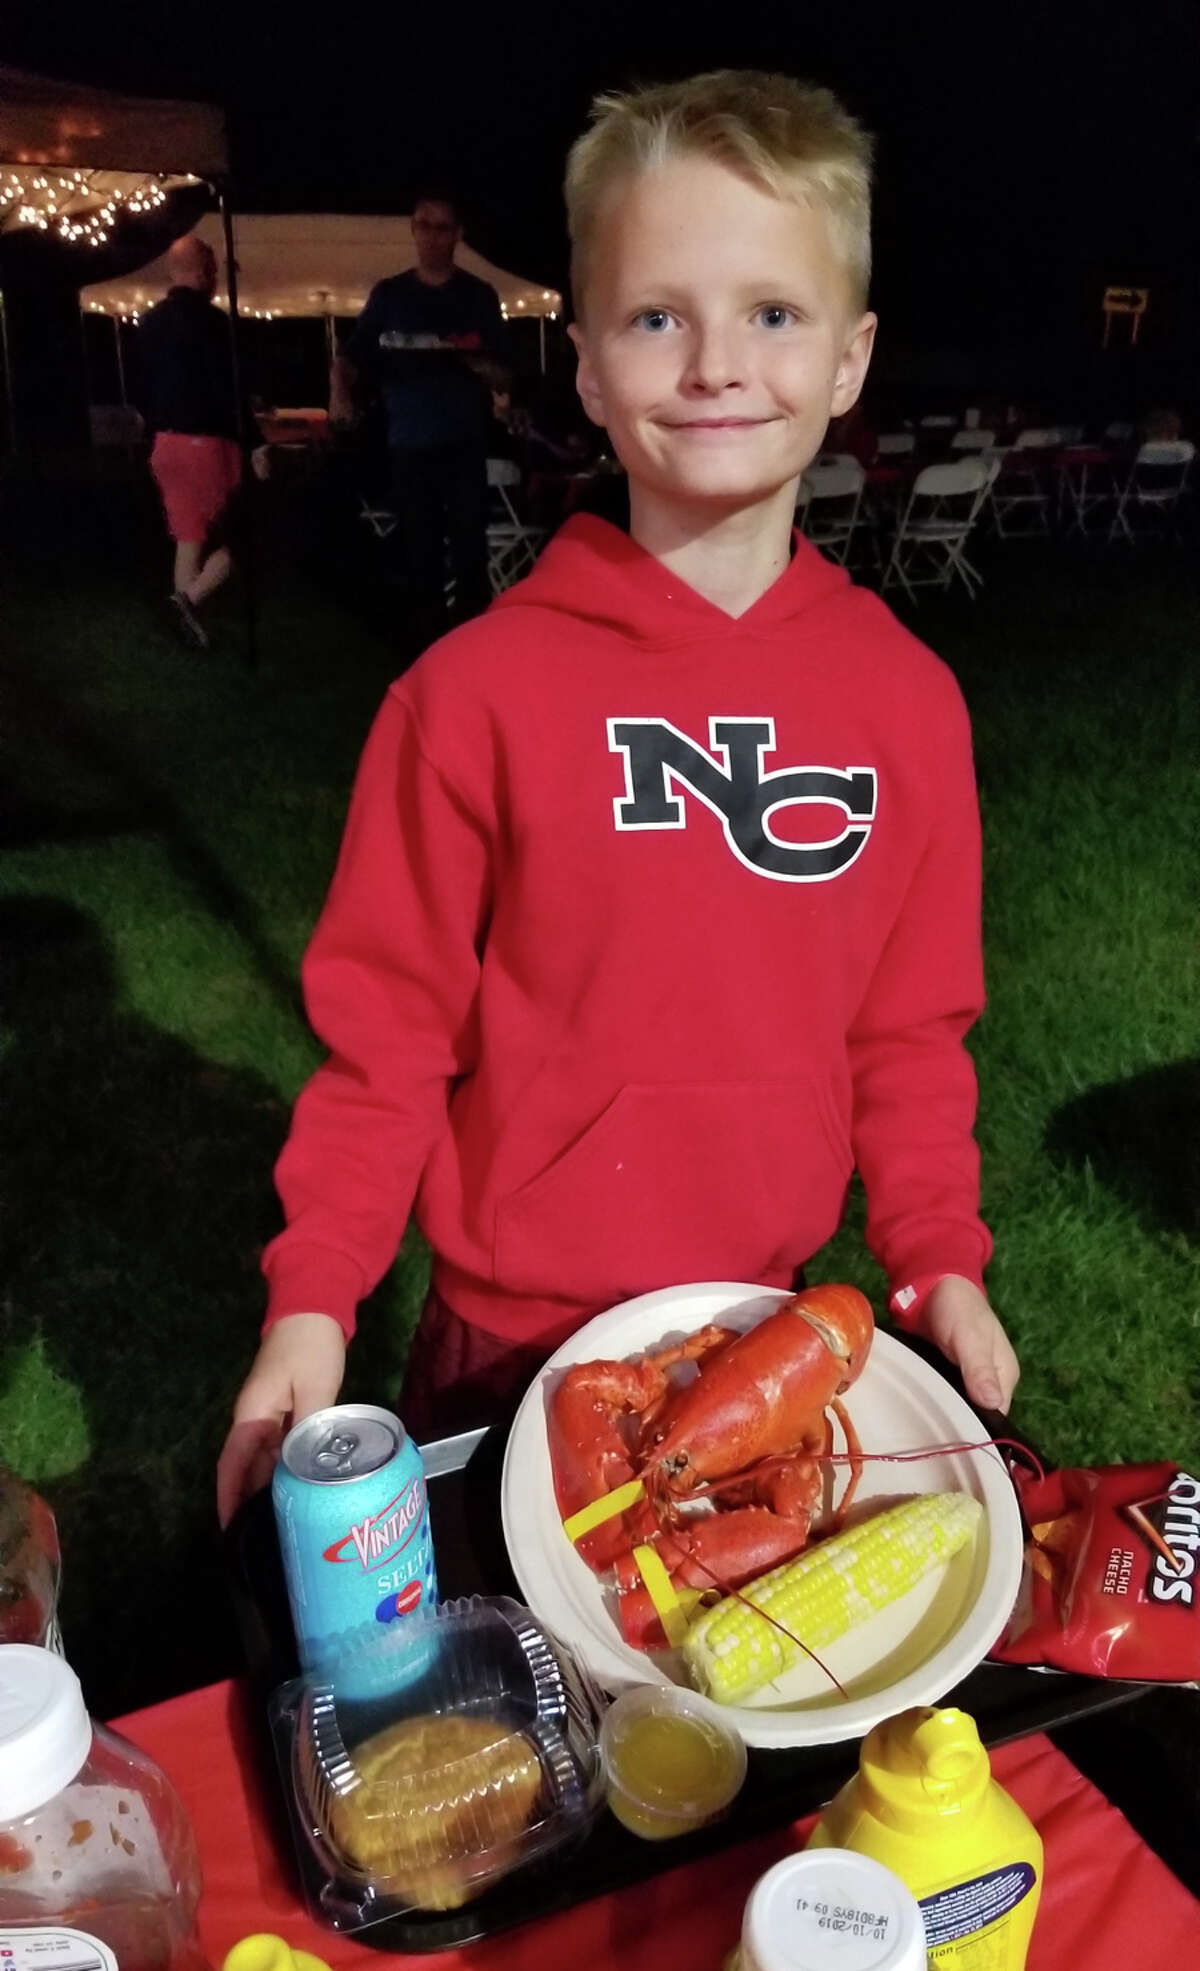 About to enjoy his lobster dinner, this youngster was very happy, was all smiles.